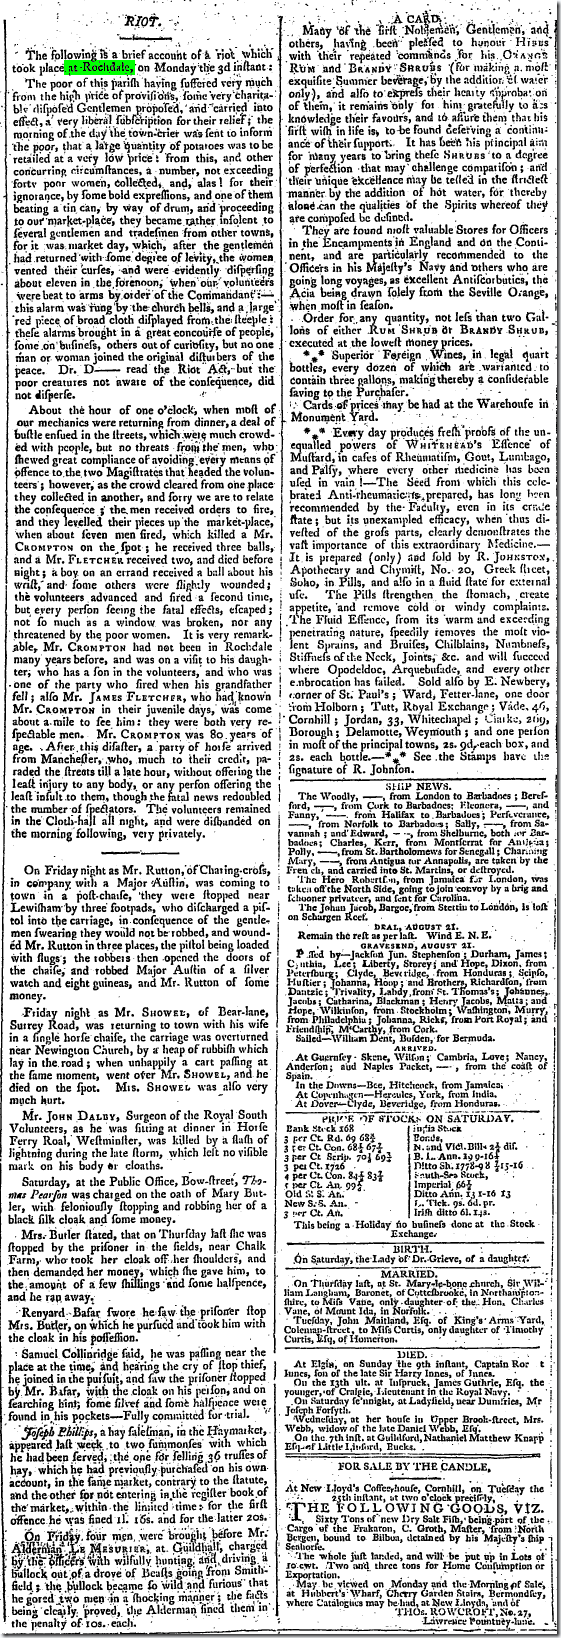 Star (London, England), Monday, August 24, 1795; Issue 2189.